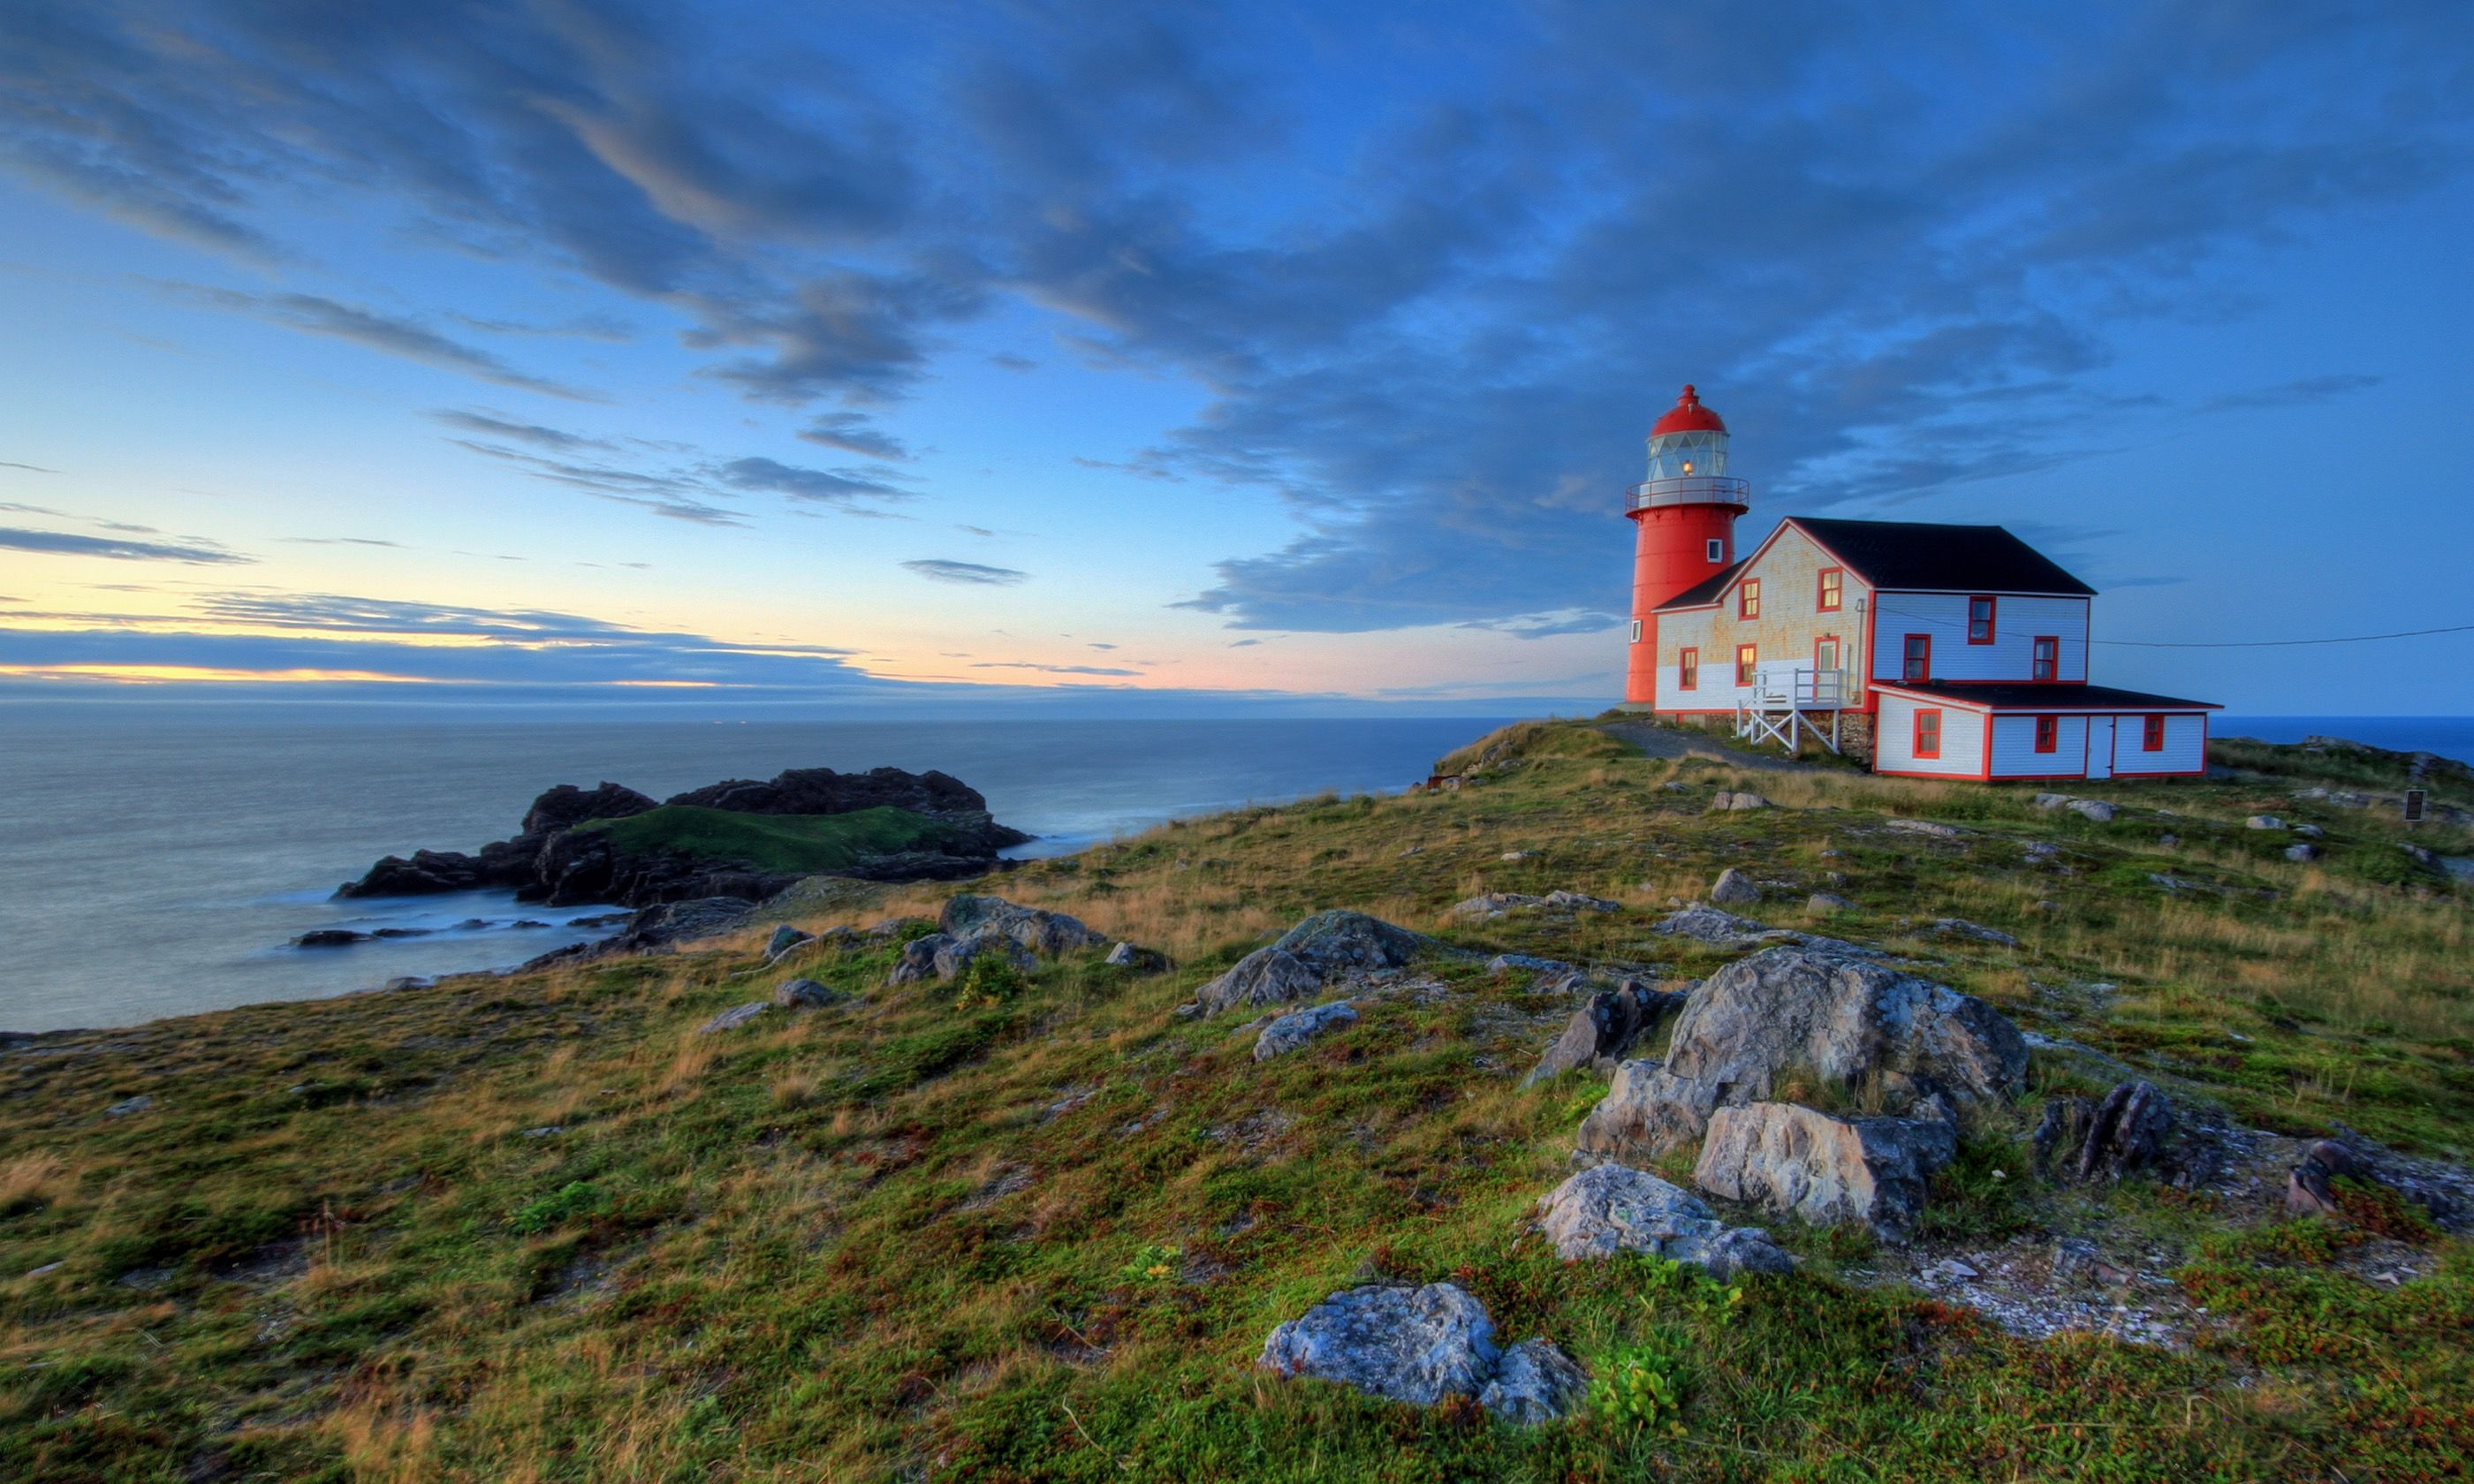 Lighthouse in Newfoundland (Shutterstock.com)